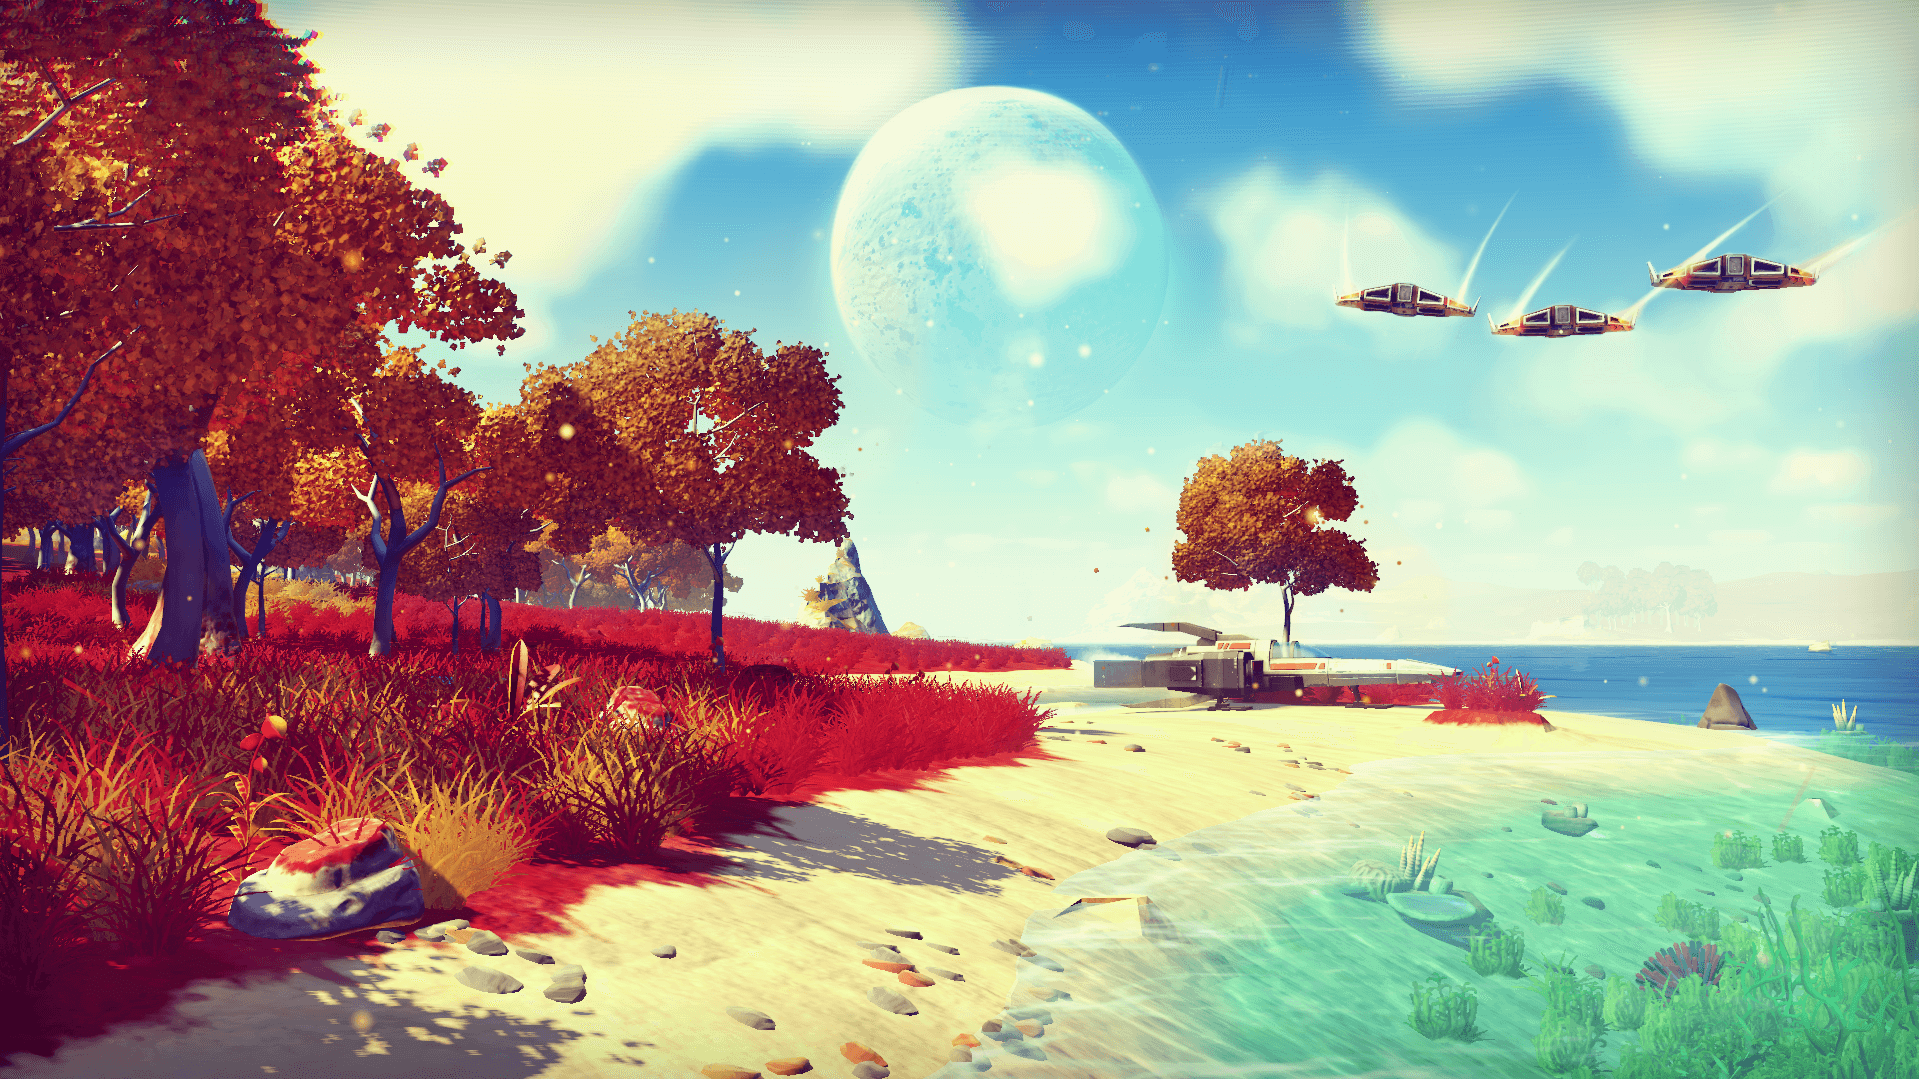 The Sky's the Limit for No Man's Sky